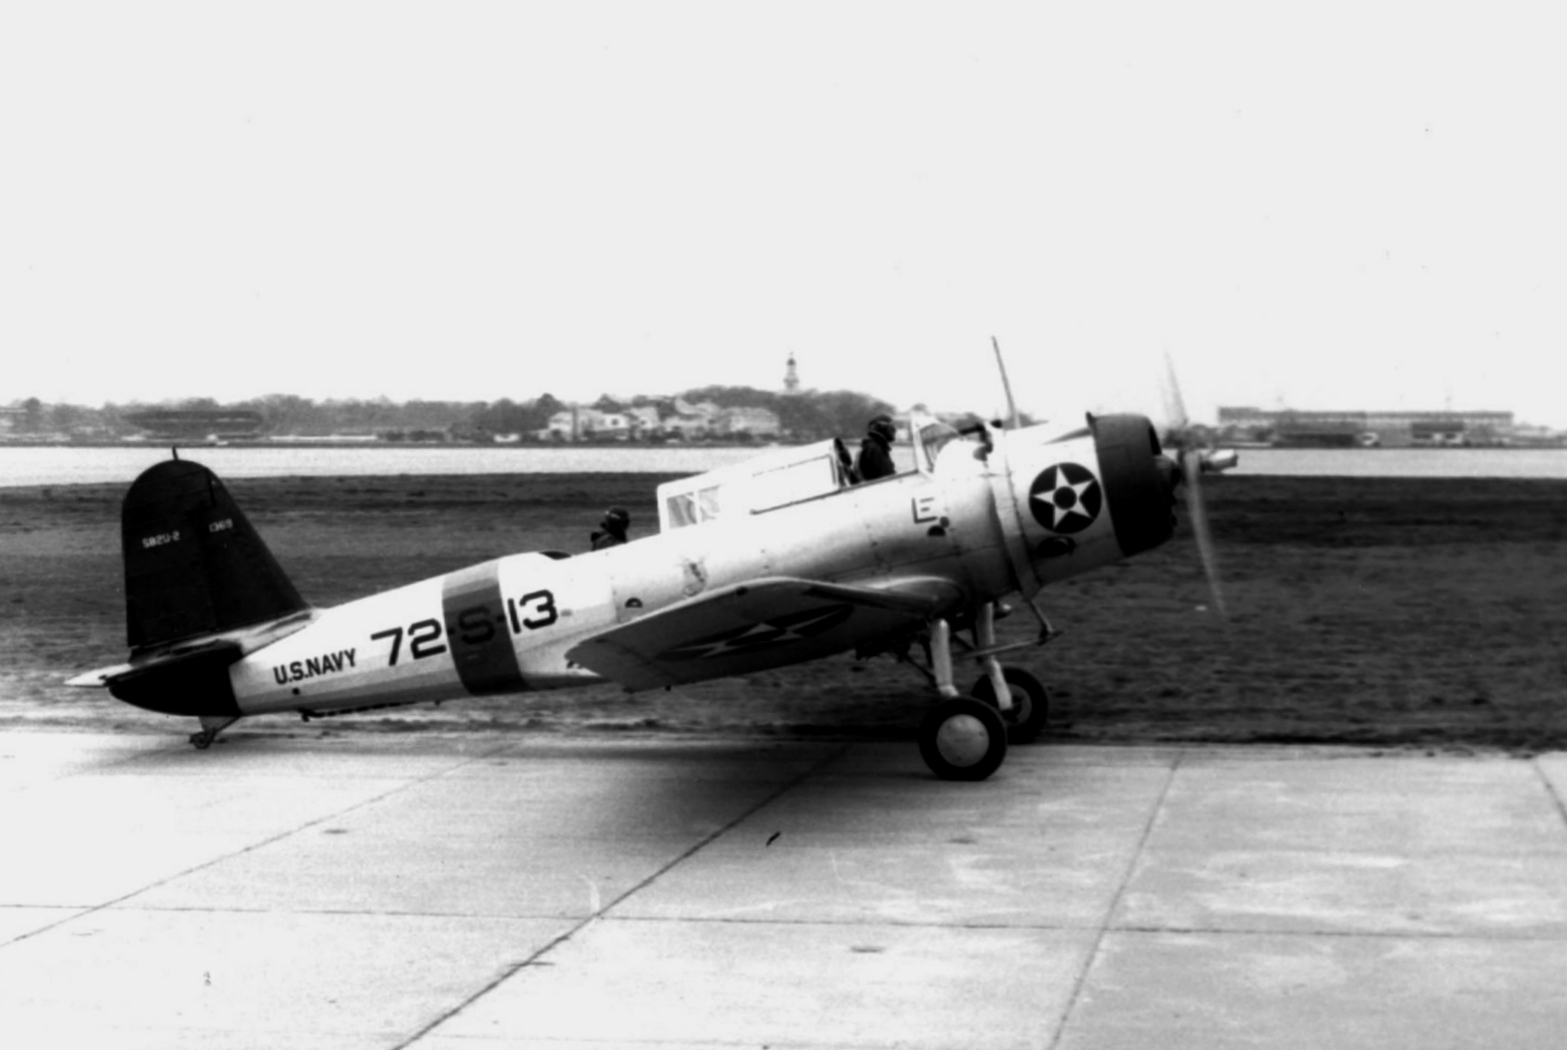 Vought_SB2U-3_VS-72_Jan1941_NAN1-90.jpg